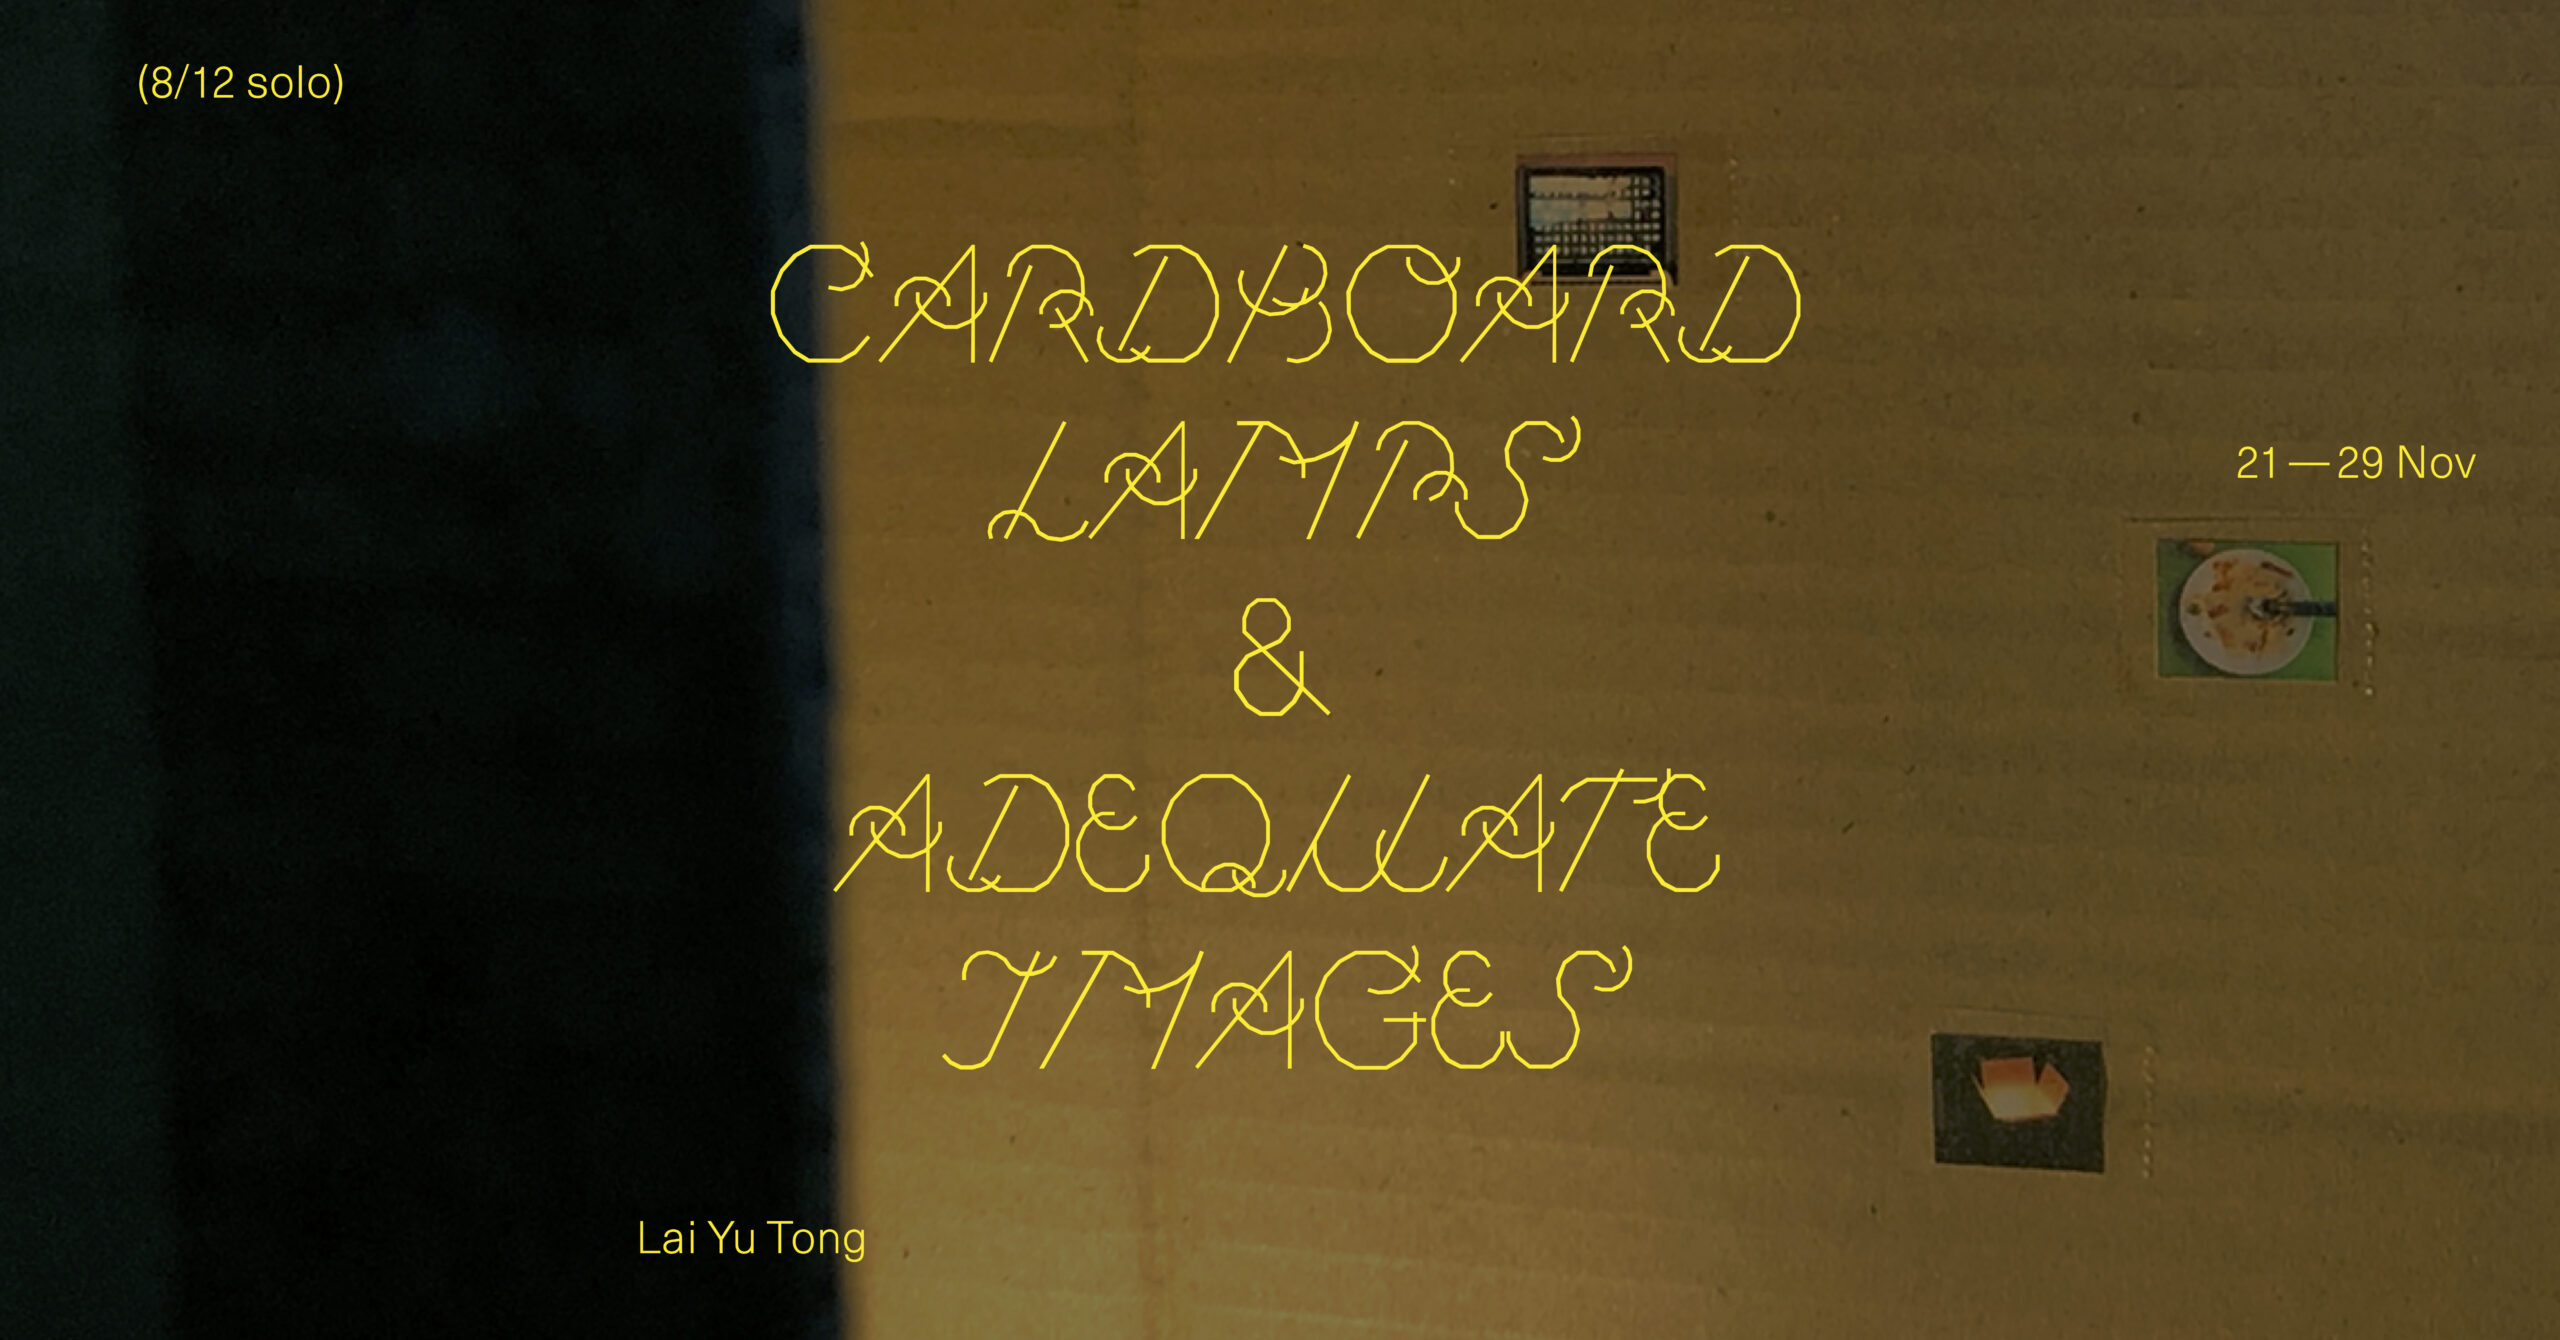 Cardboard Lamps & Adequate Images_title